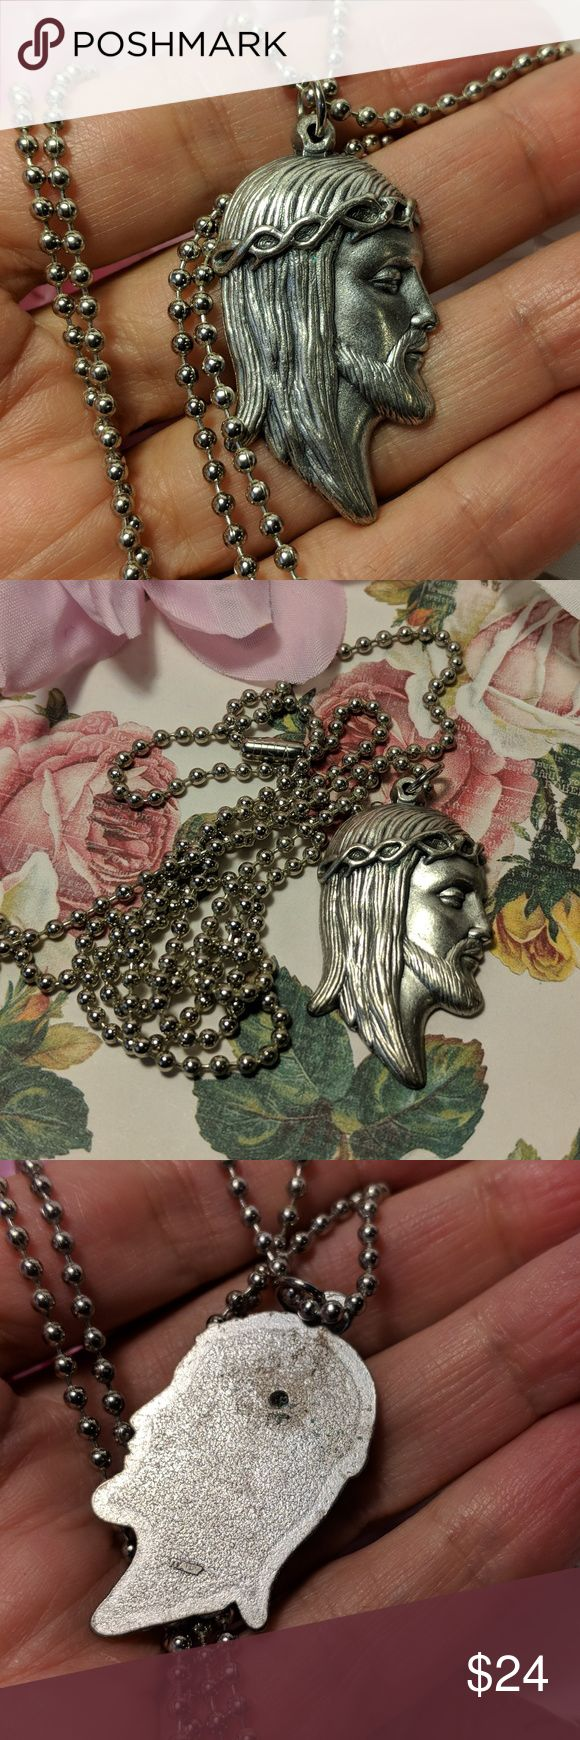 Jesus Crown of Thorns Pendant Long Silver Necklace Jesus Crown of Thorns Pendant Long Silver Necklace  Large pendant is marked ITALY. Silver tone. Heavier weight and fine detail. On a 30 inch USA made all steel chain with closure. Pendant is approx. 1.5 inchs long. Jewelry Necklaces